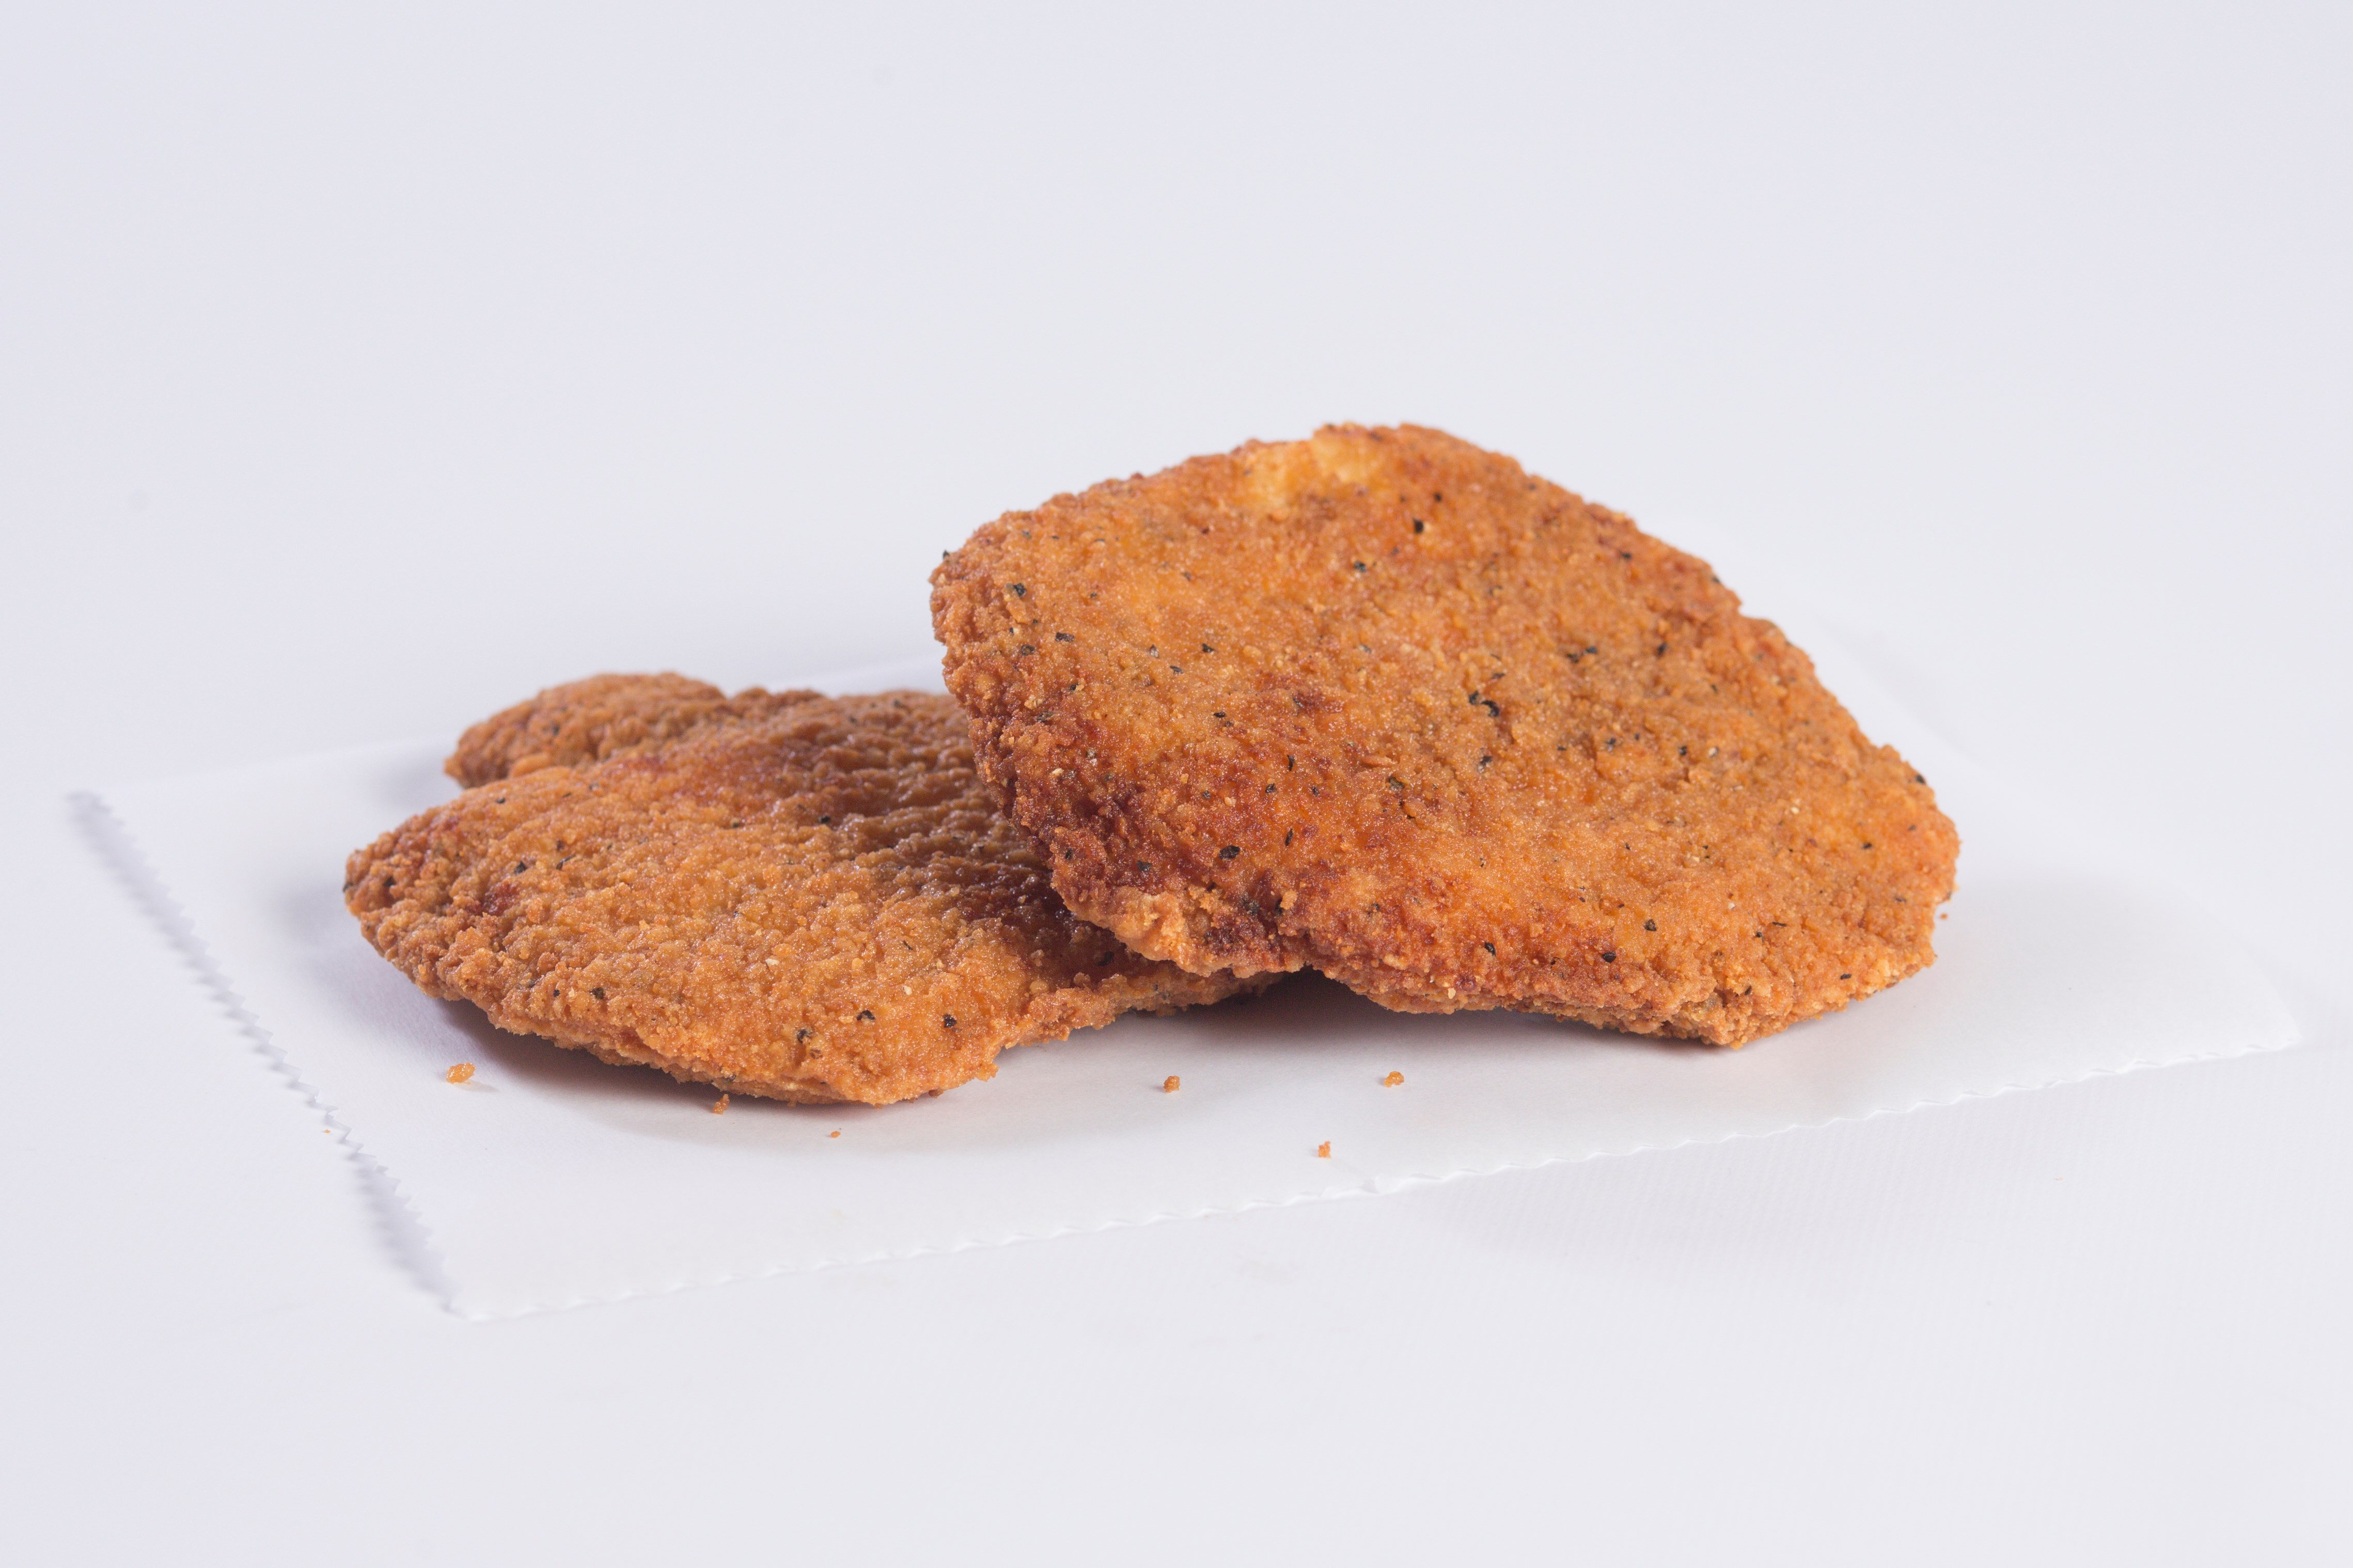 7517 Whole Grain Breaded Chris P. Chicken 4 oz Spicy Fillets image